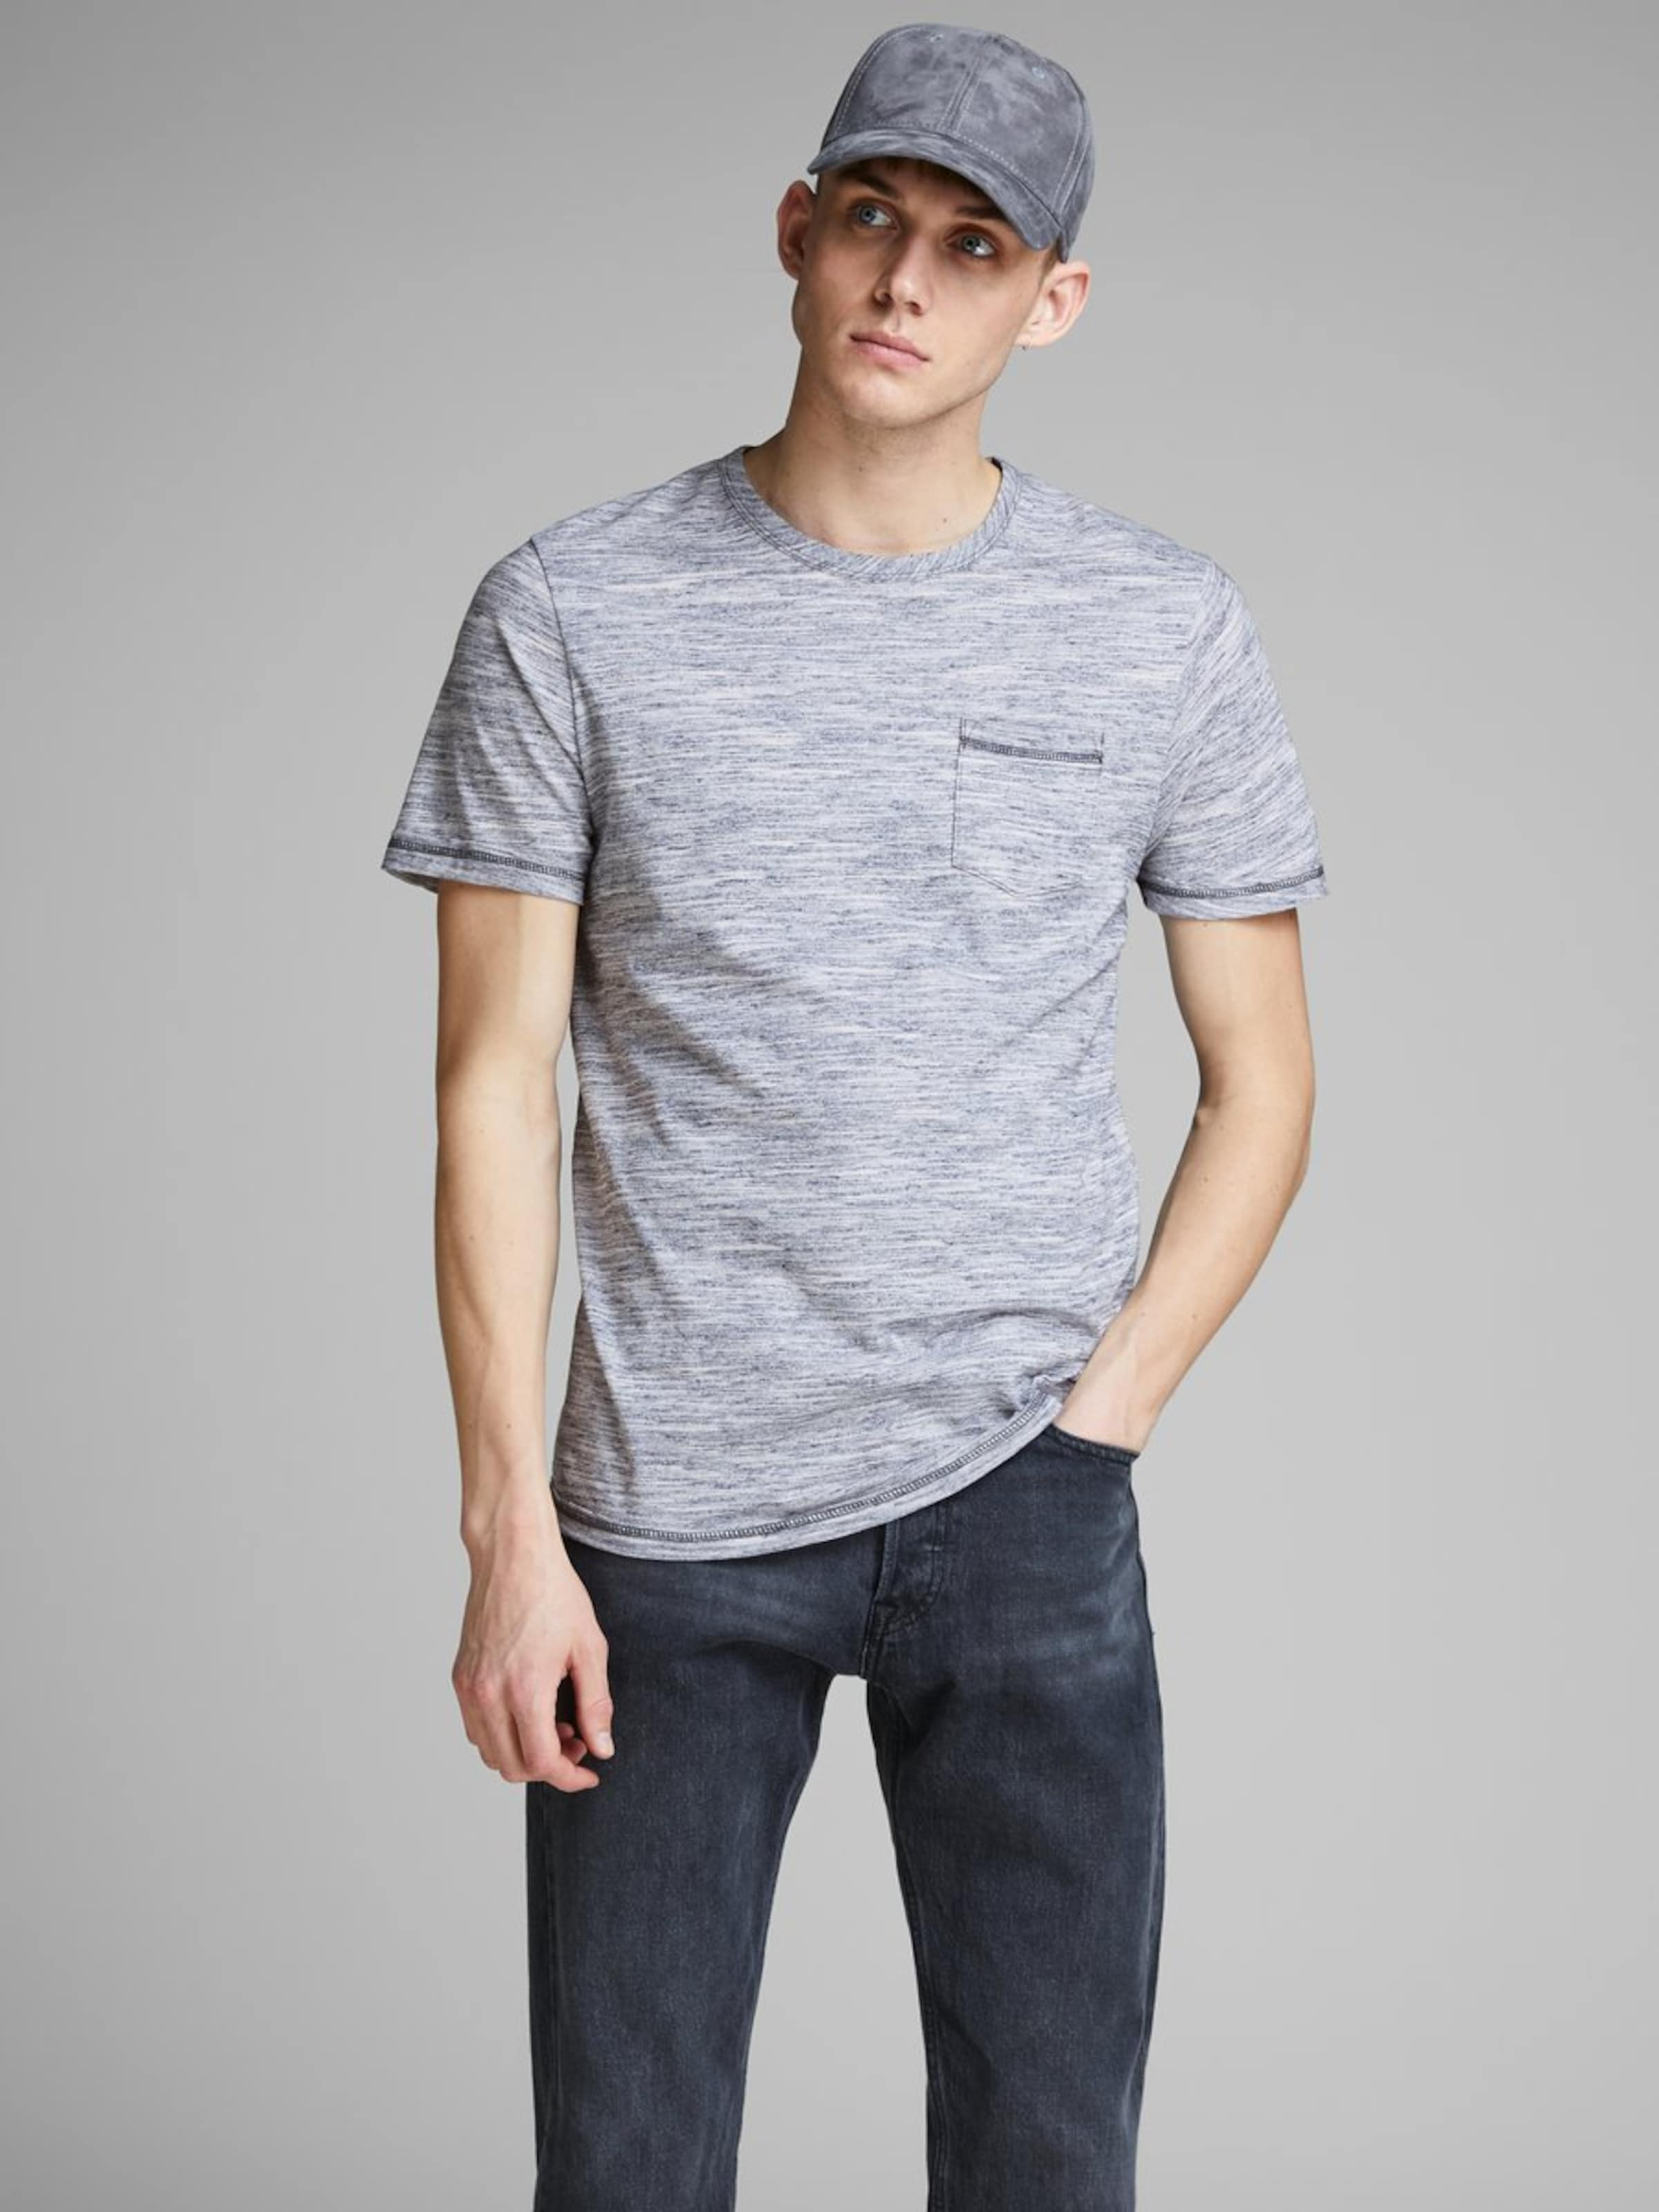 Jones shirt T Bleu Jackamp; En gris 7vbfgYIy6